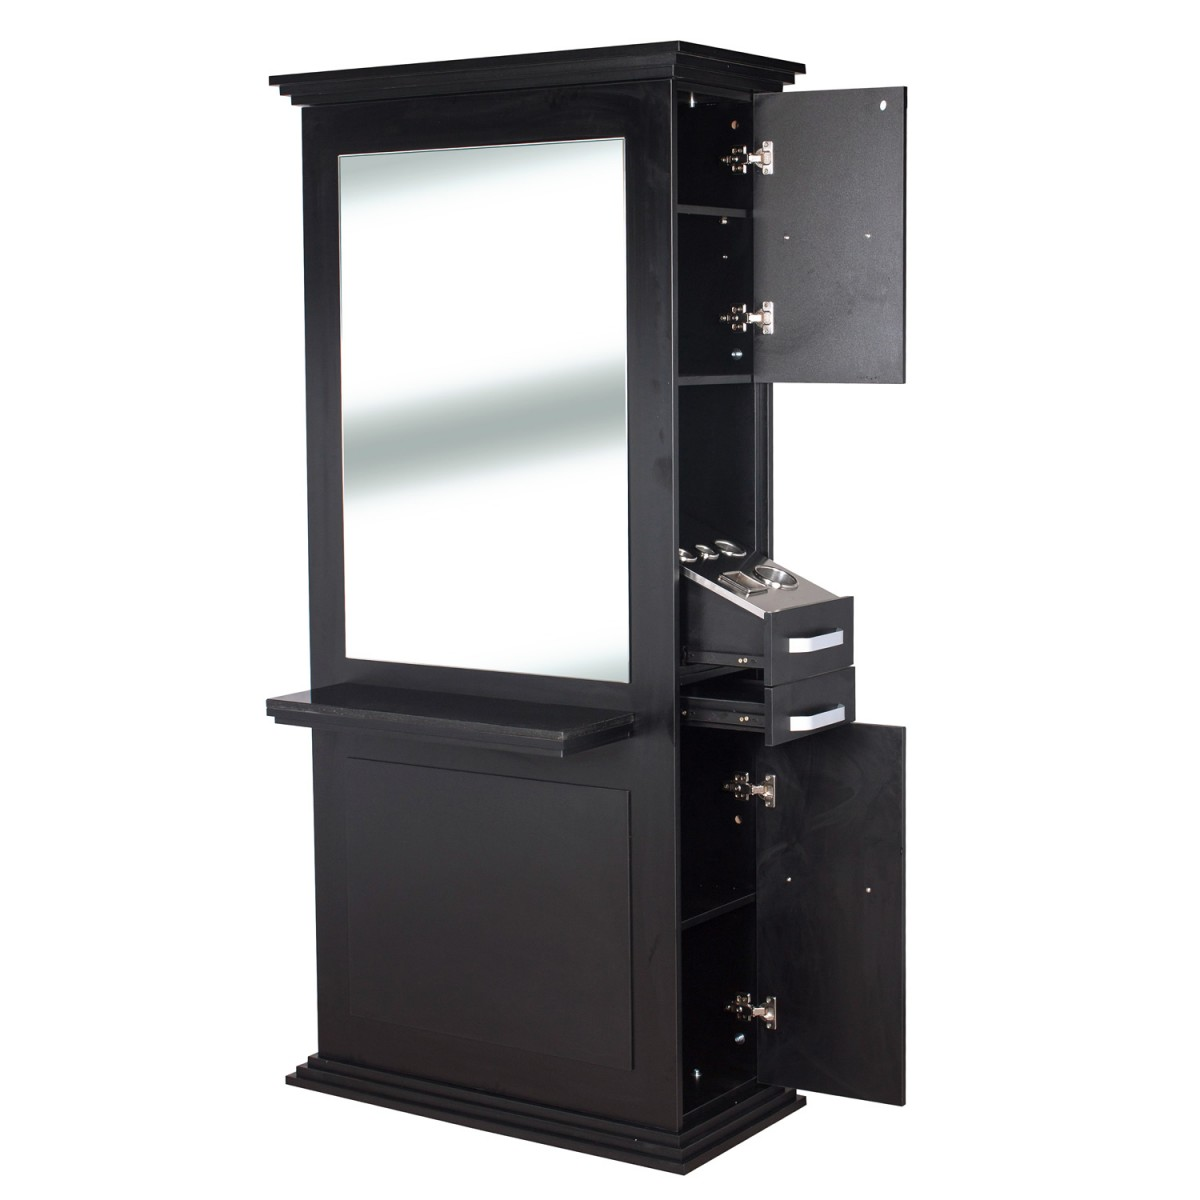 """SIENA"" Single Sided Salon Station in Matte Black, Single Sided Styling Station, Single Sided Salon Mirror"